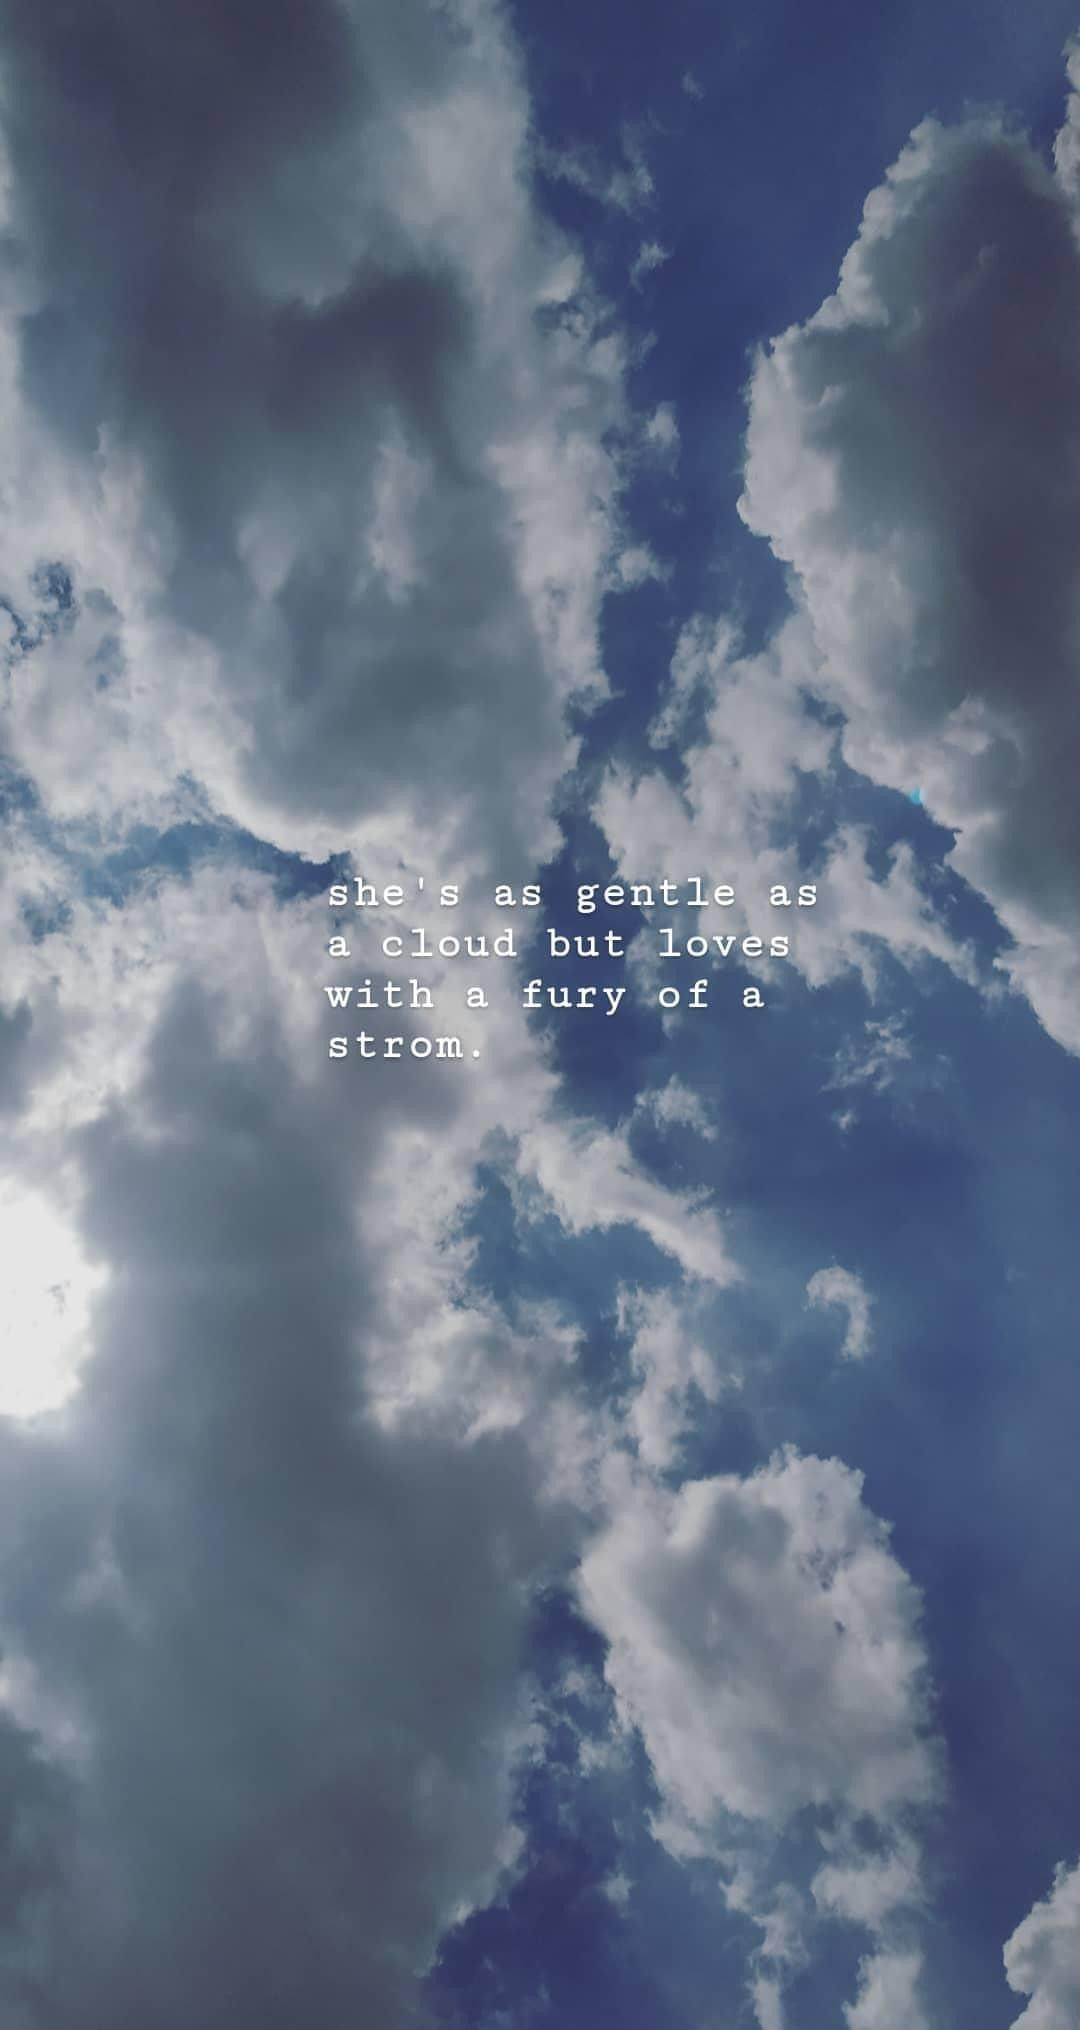 clouds quotes she love storm gentle sky quotes cloud